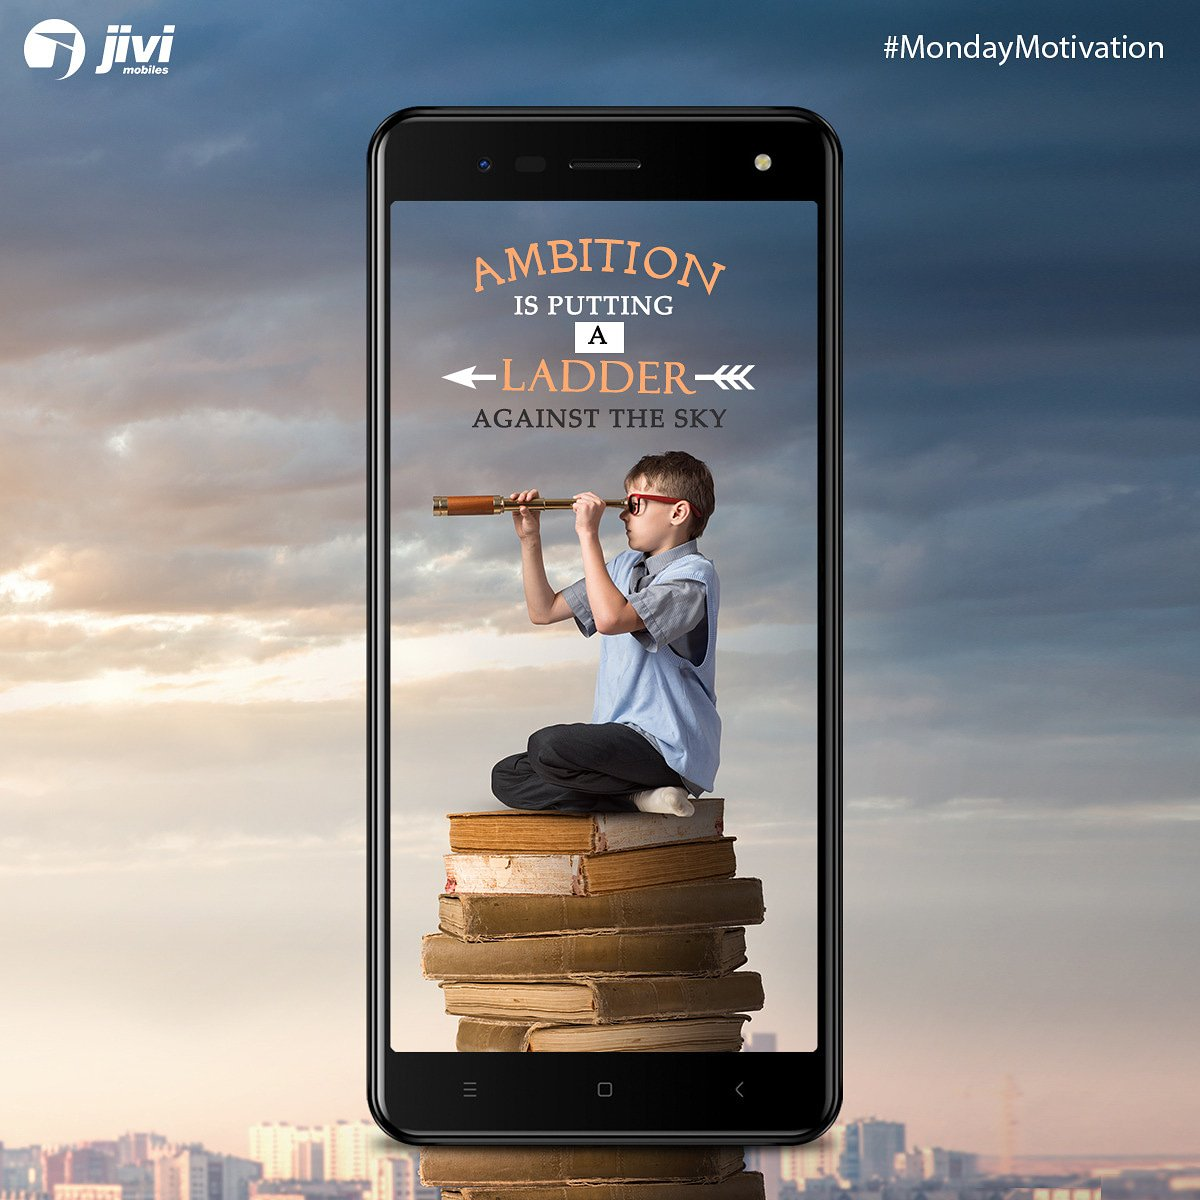 Make an effort to follow your ambitions. #JiviMobiles #MondayMotivation #Ambitions #Motivation #SmartPhone #Mobile #PhotoOfTheDay #PicOfTheDay #Techie #MobileLegends #Phone #Android #Device #AndroidOnly #Androidographer #Androidography #AndroidLove #MotivationalQuotes